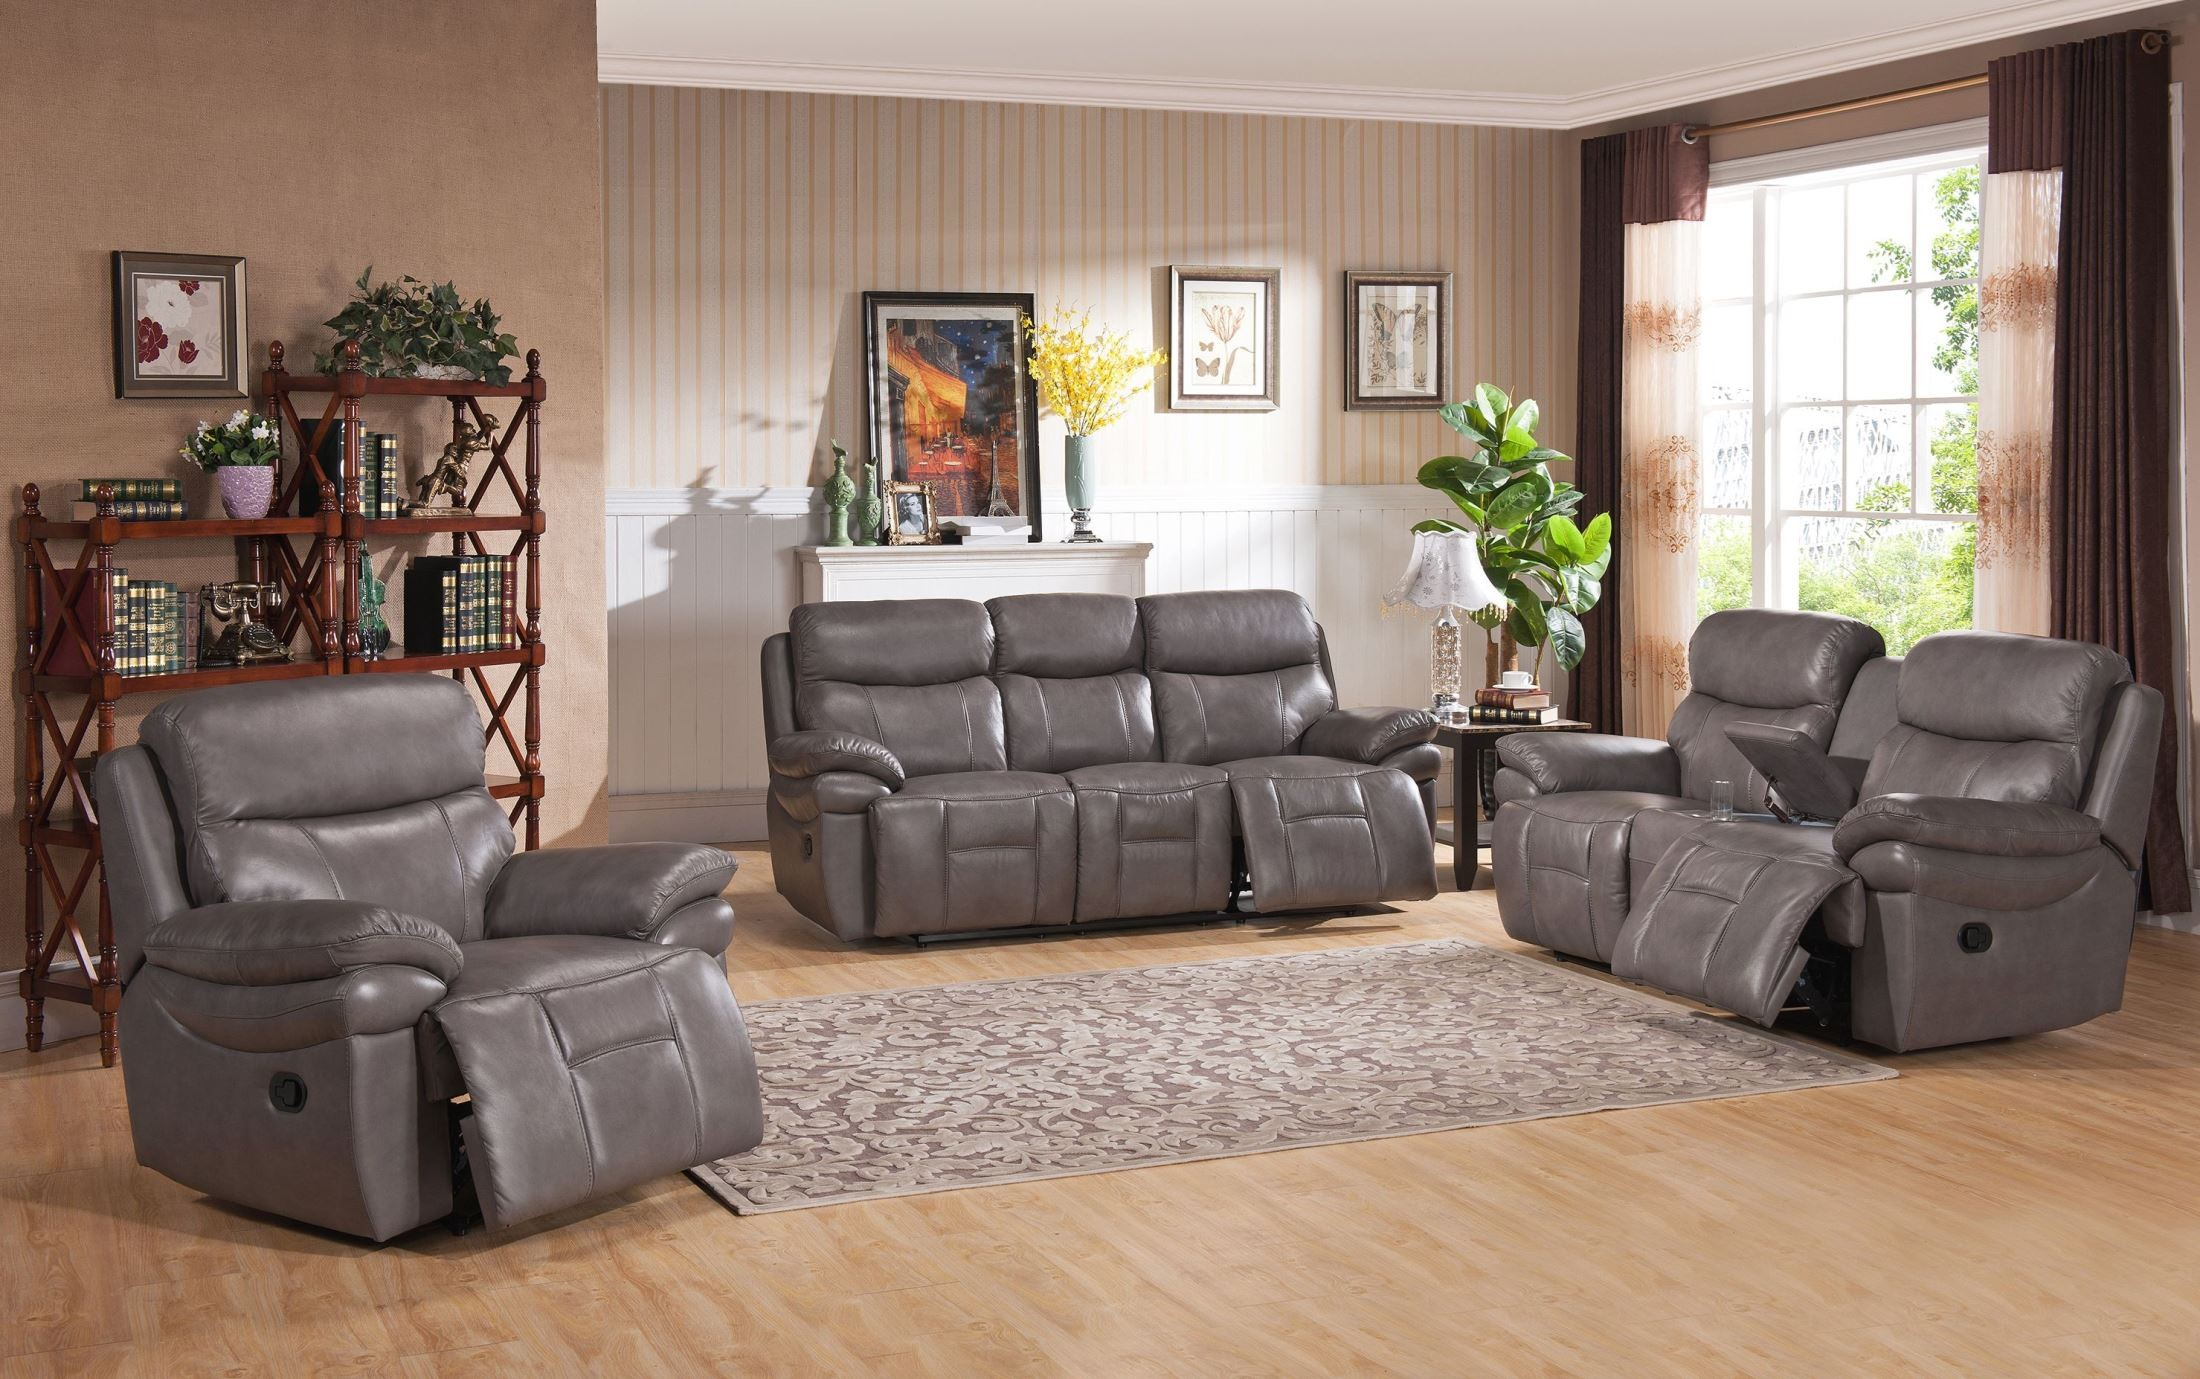 couches living room summerlands smoke grey leather reclining living room set 11365